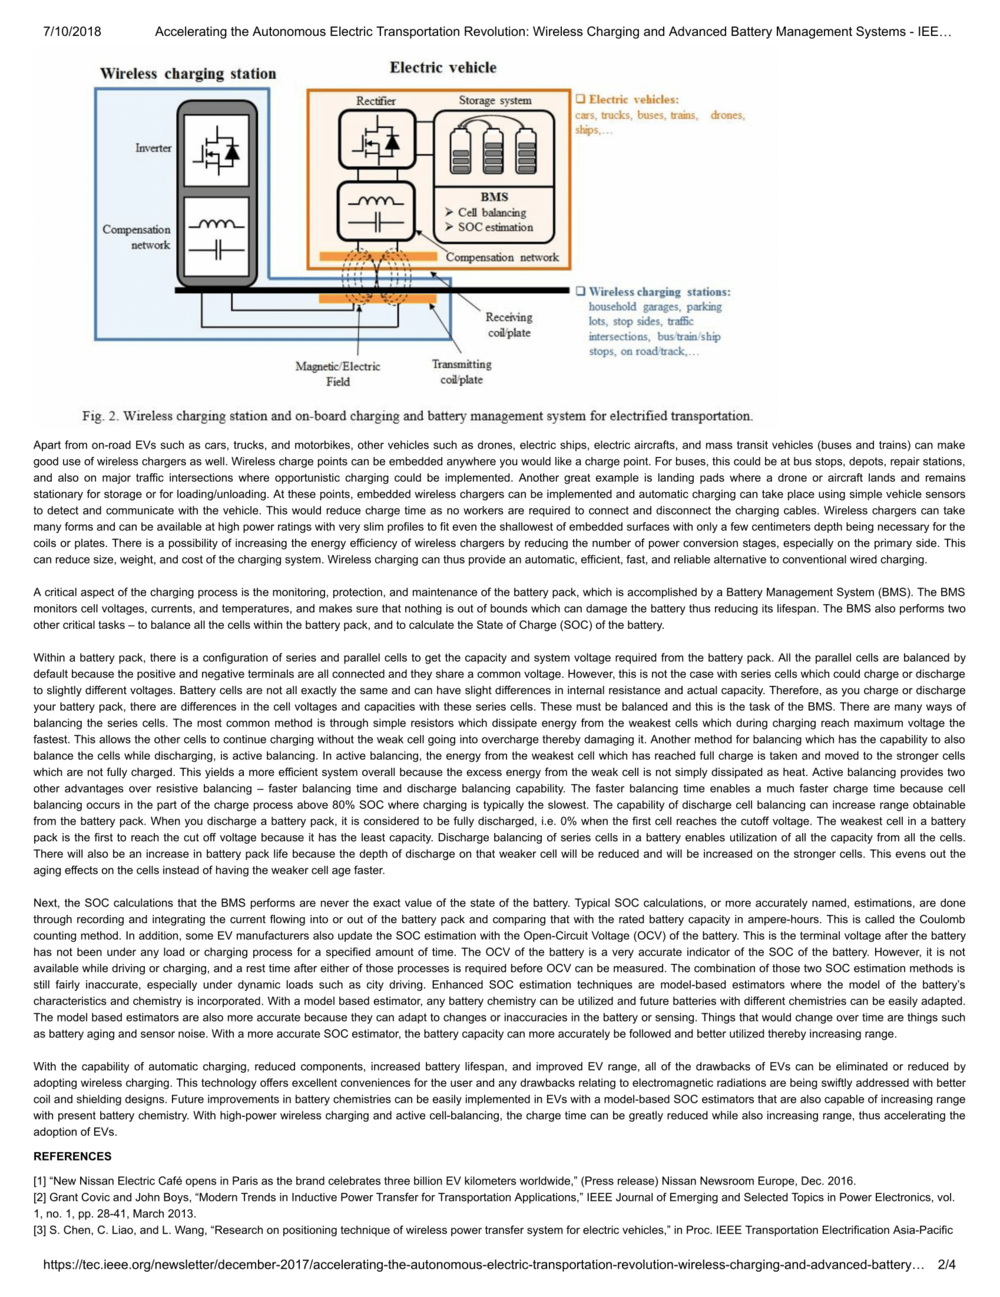 Accelerating the Autonomous Electric Transportation Revolution_ Wireless Charging and Advanced Battery Management Systems - IEEE Transportation Electrification Community-2.png